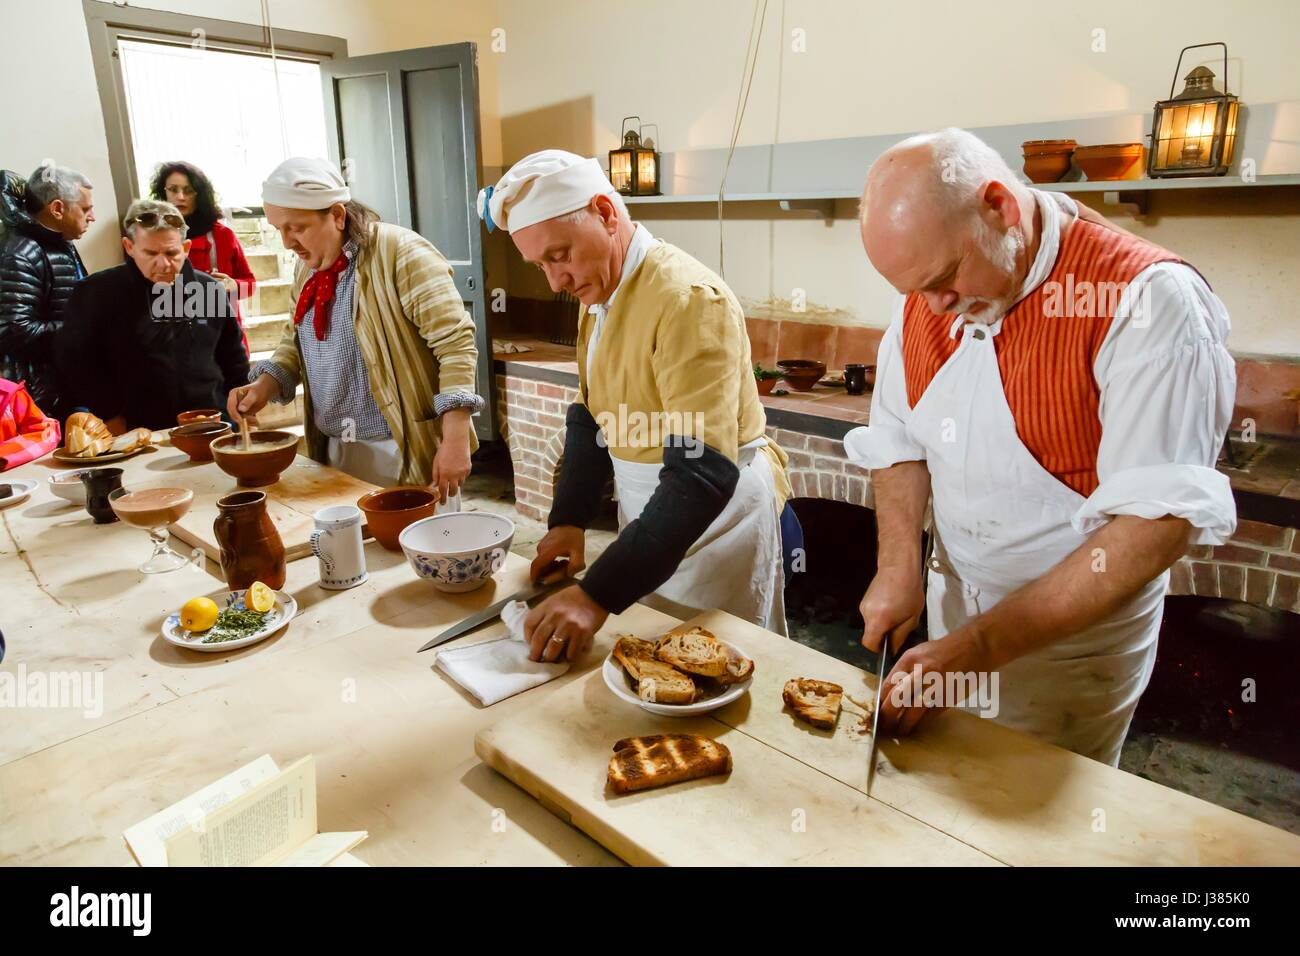 Chefs in traditional costume cooking in the Royal Kitchens, Kew Gardens, London, UK - Stock Image